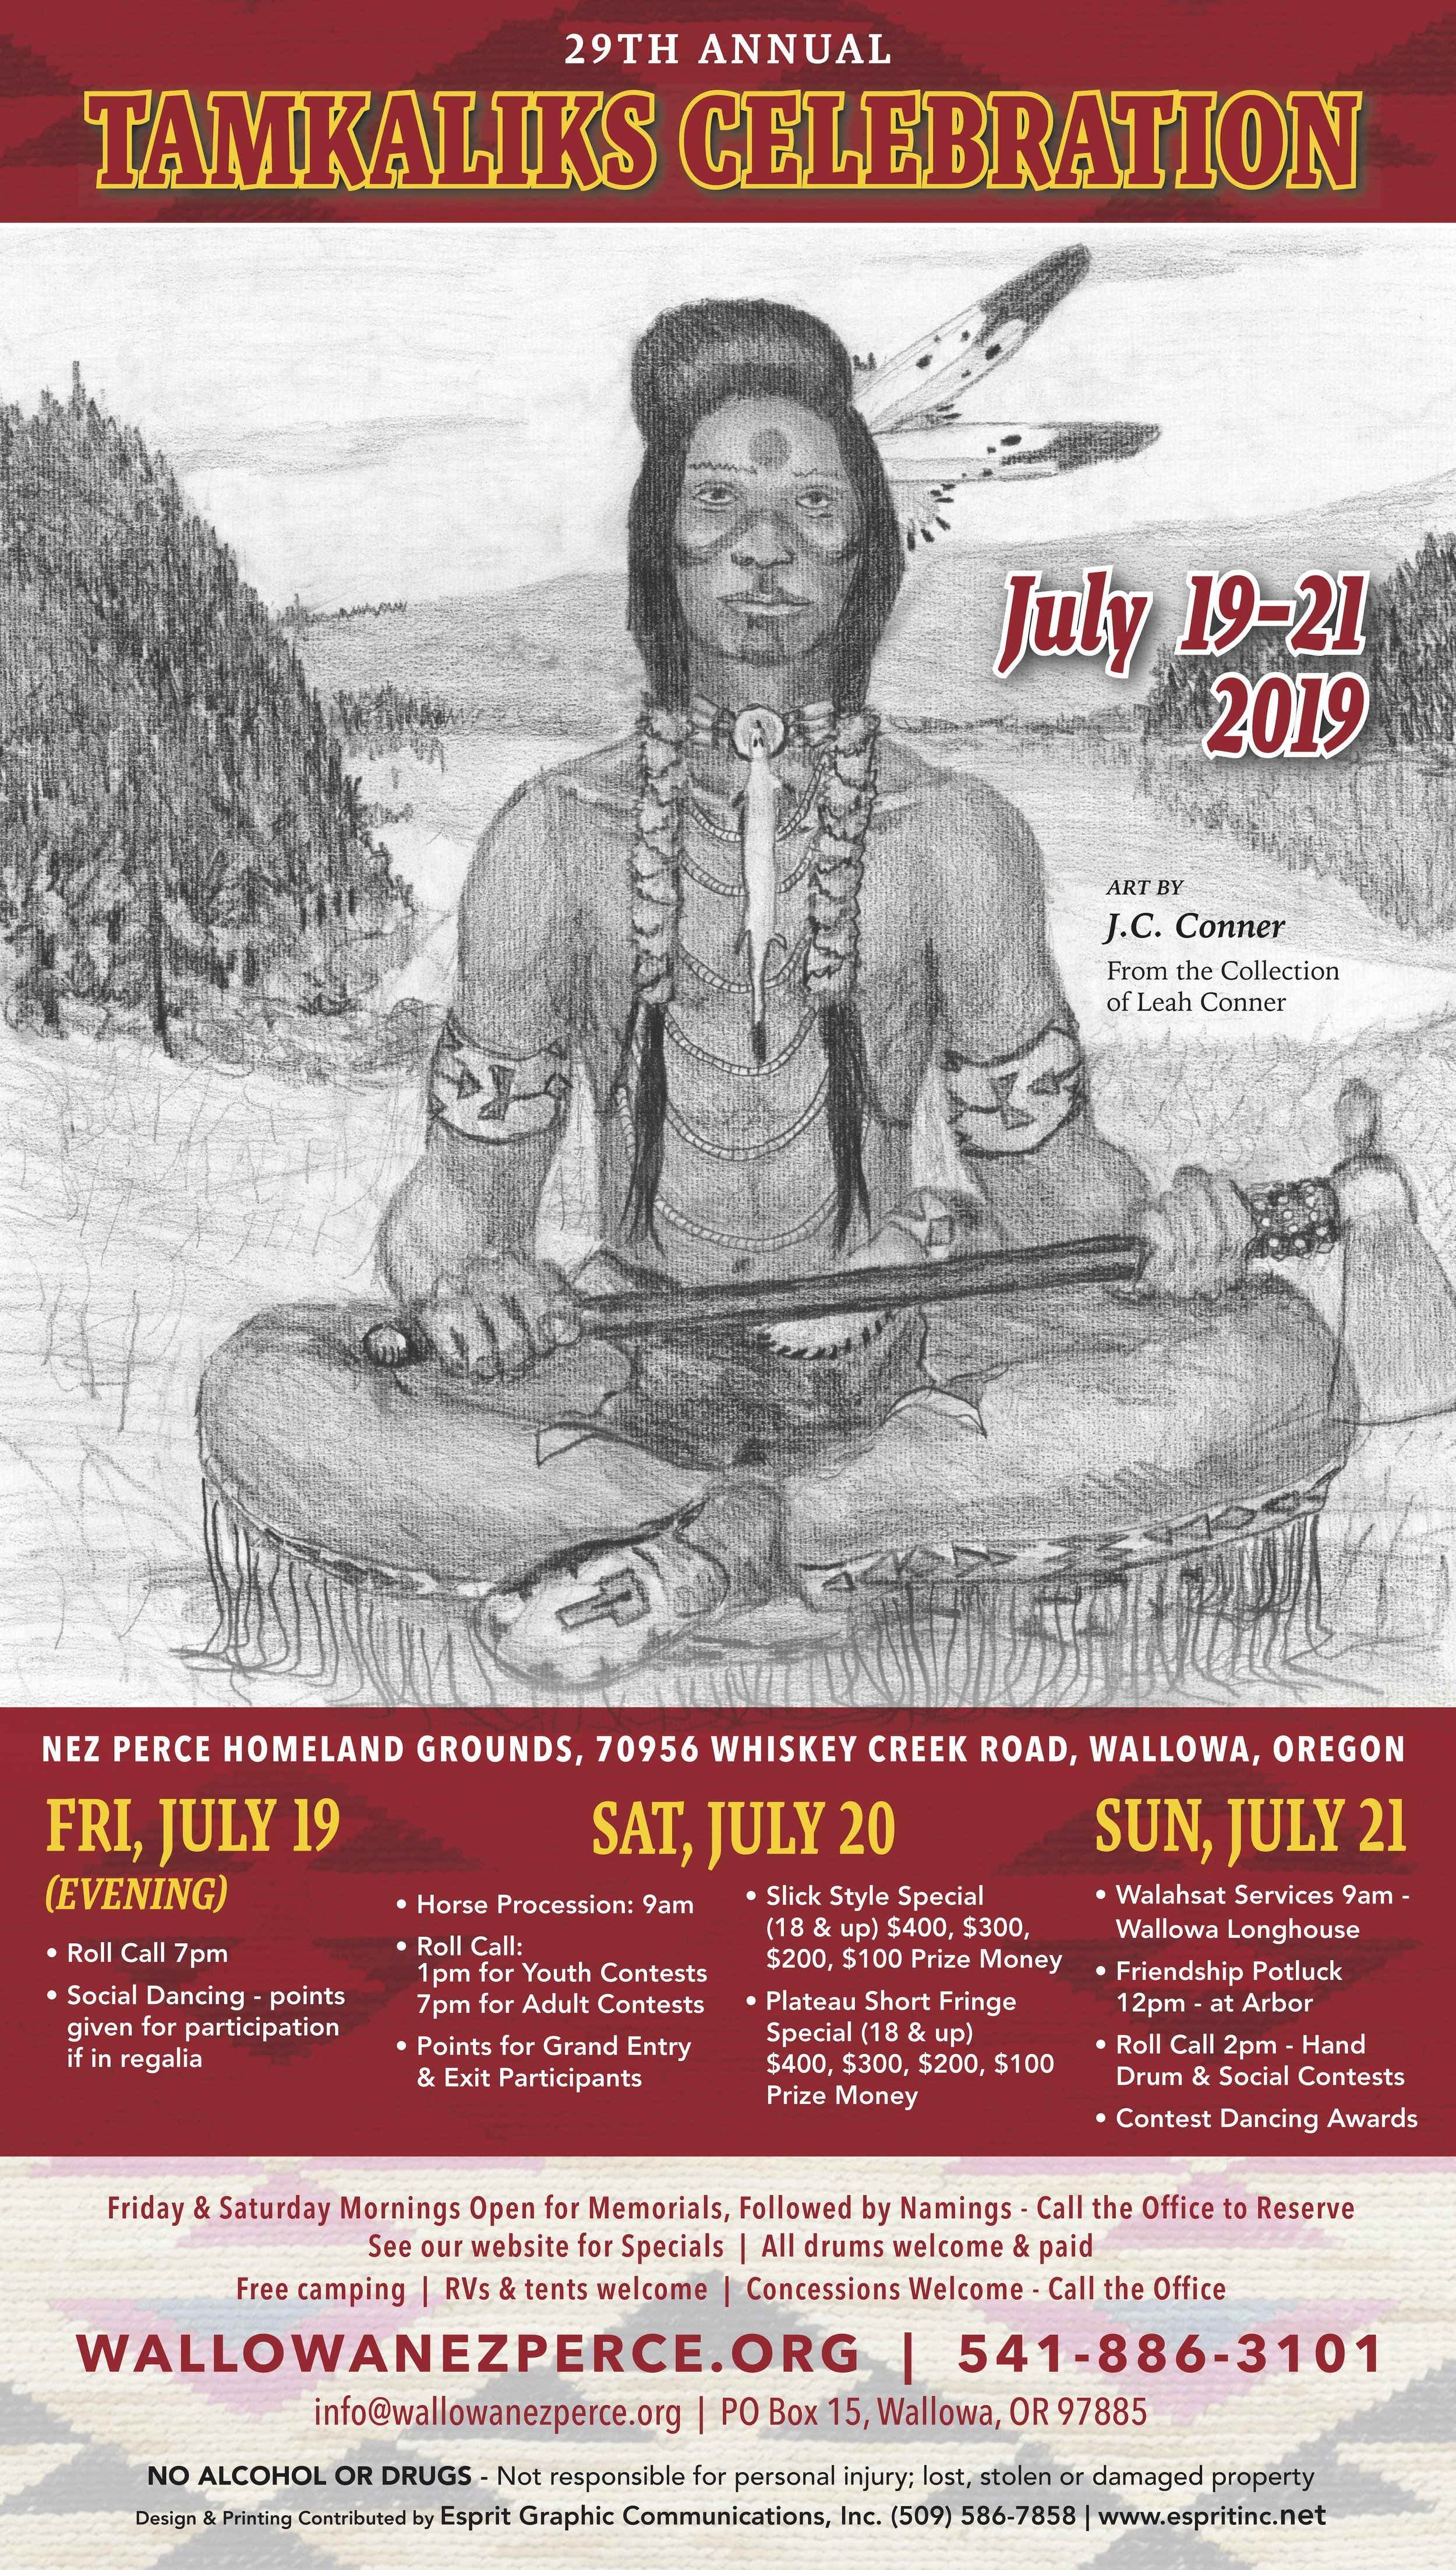 2018 Nez Perce Tamkaliks Celebration and Friendship Feast is Friday, July 20th - Sunday, July 22nd at the Tamkaliks Powwow Ground in Wallowa, OR.